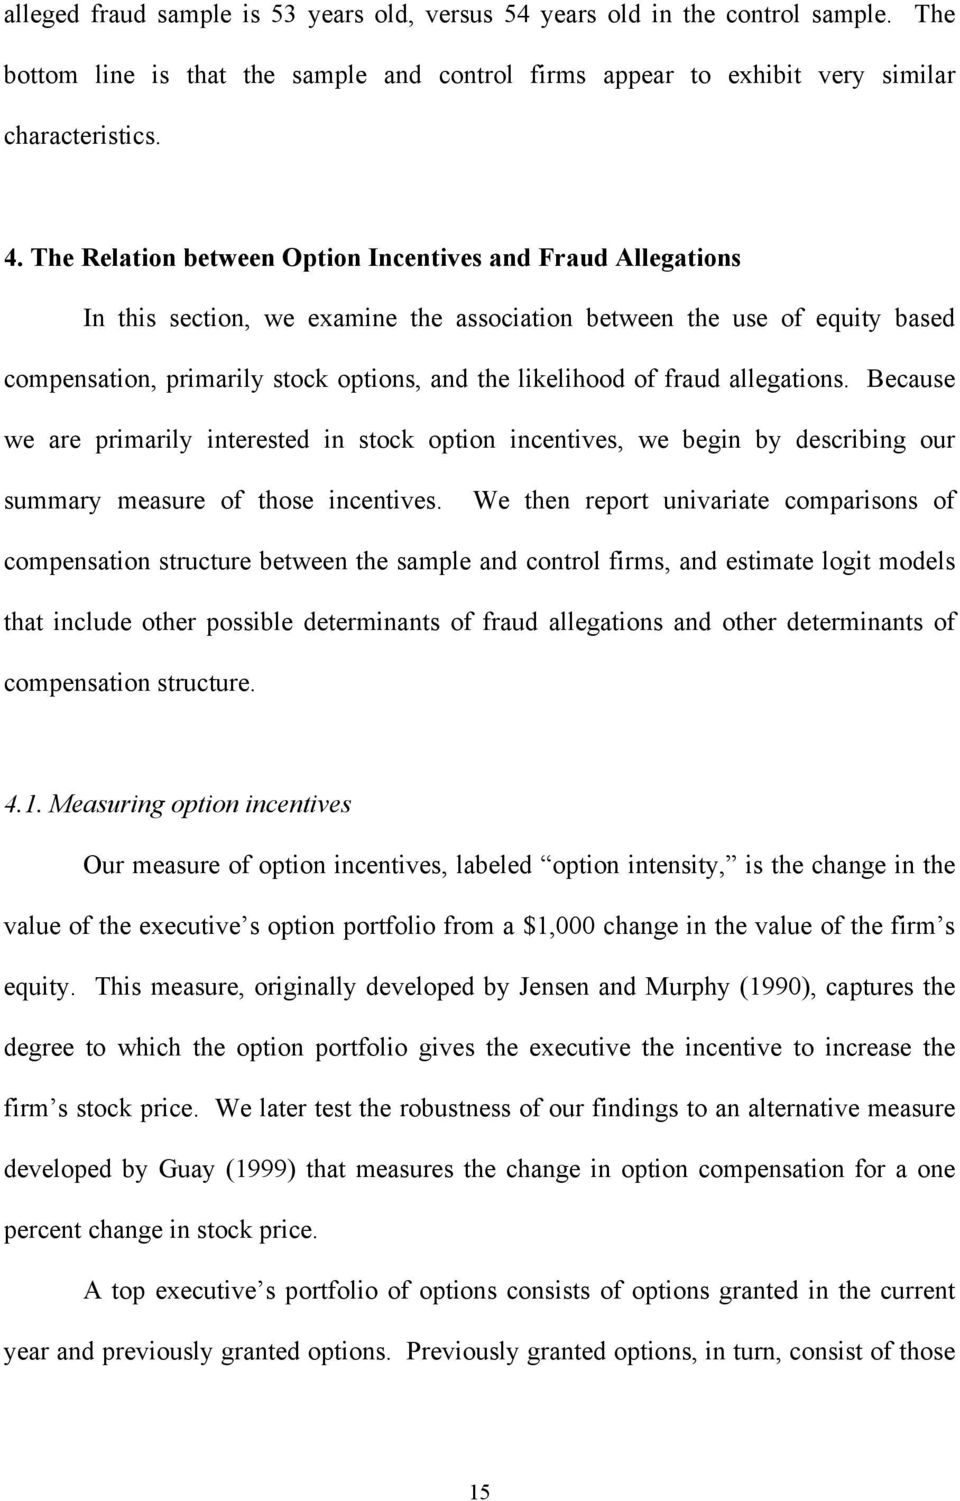 fraud allegations. Because we are primarily interested in stock option incentives, we begin by describing our summary measure of those incentives.